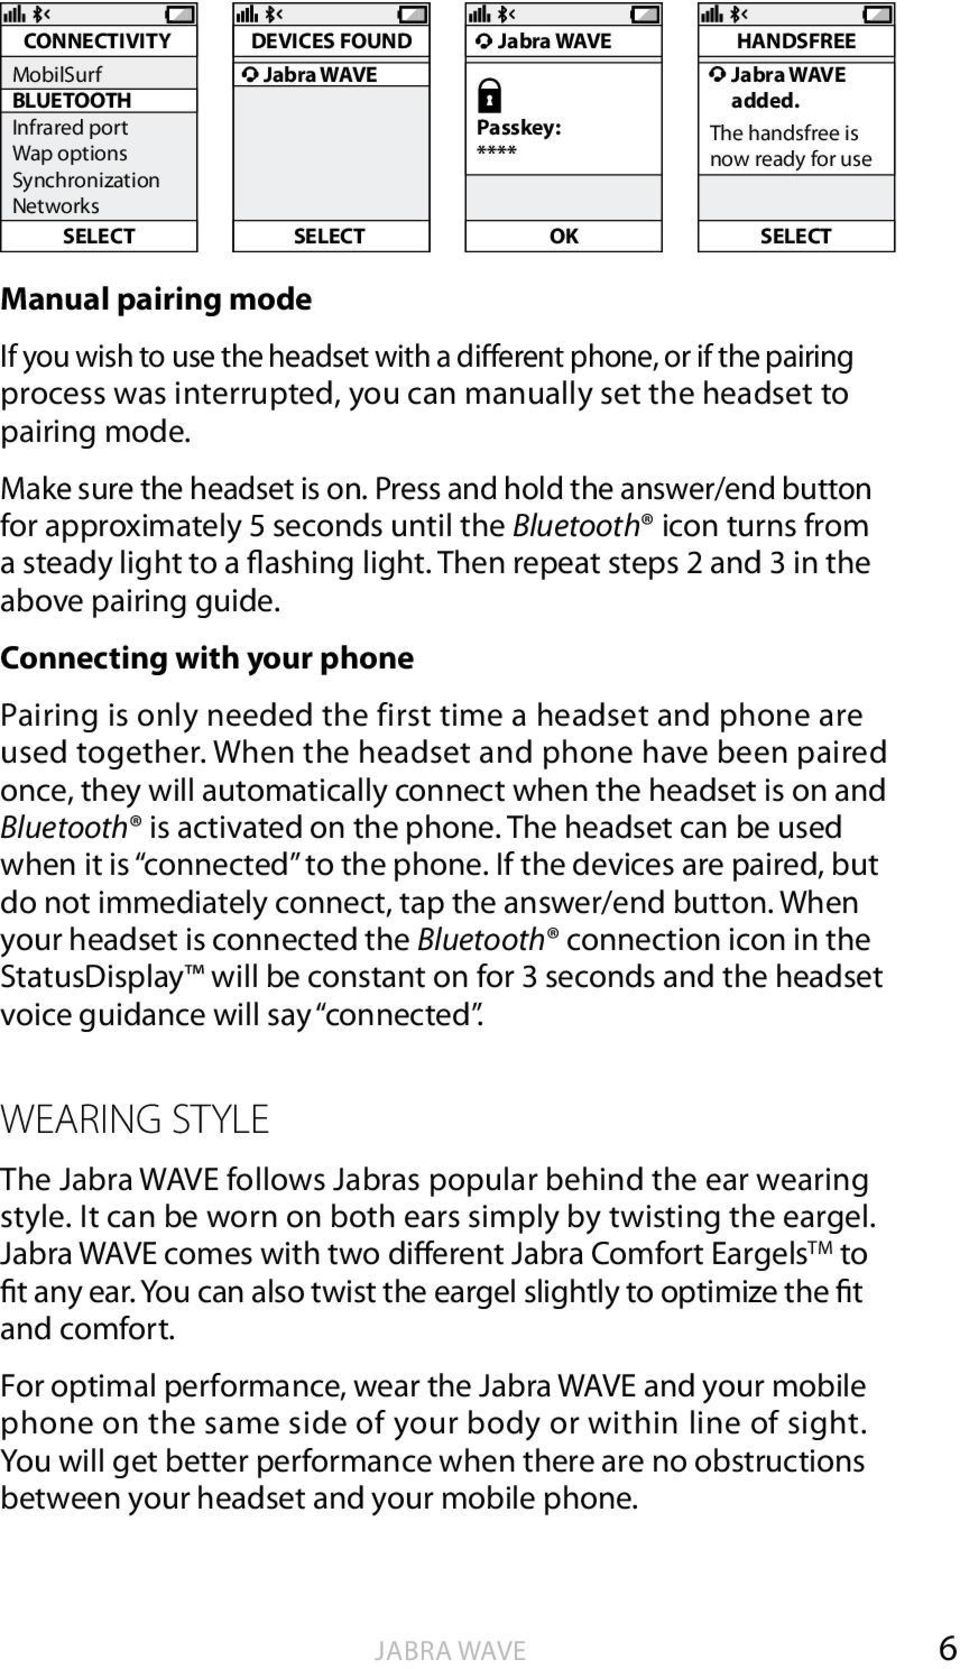 pairing mode. Make sure the headset is on. Press and hold the answer/end button for approximately 5 seconds until the Bluetooth icon turns from a steady light to a flashing light.